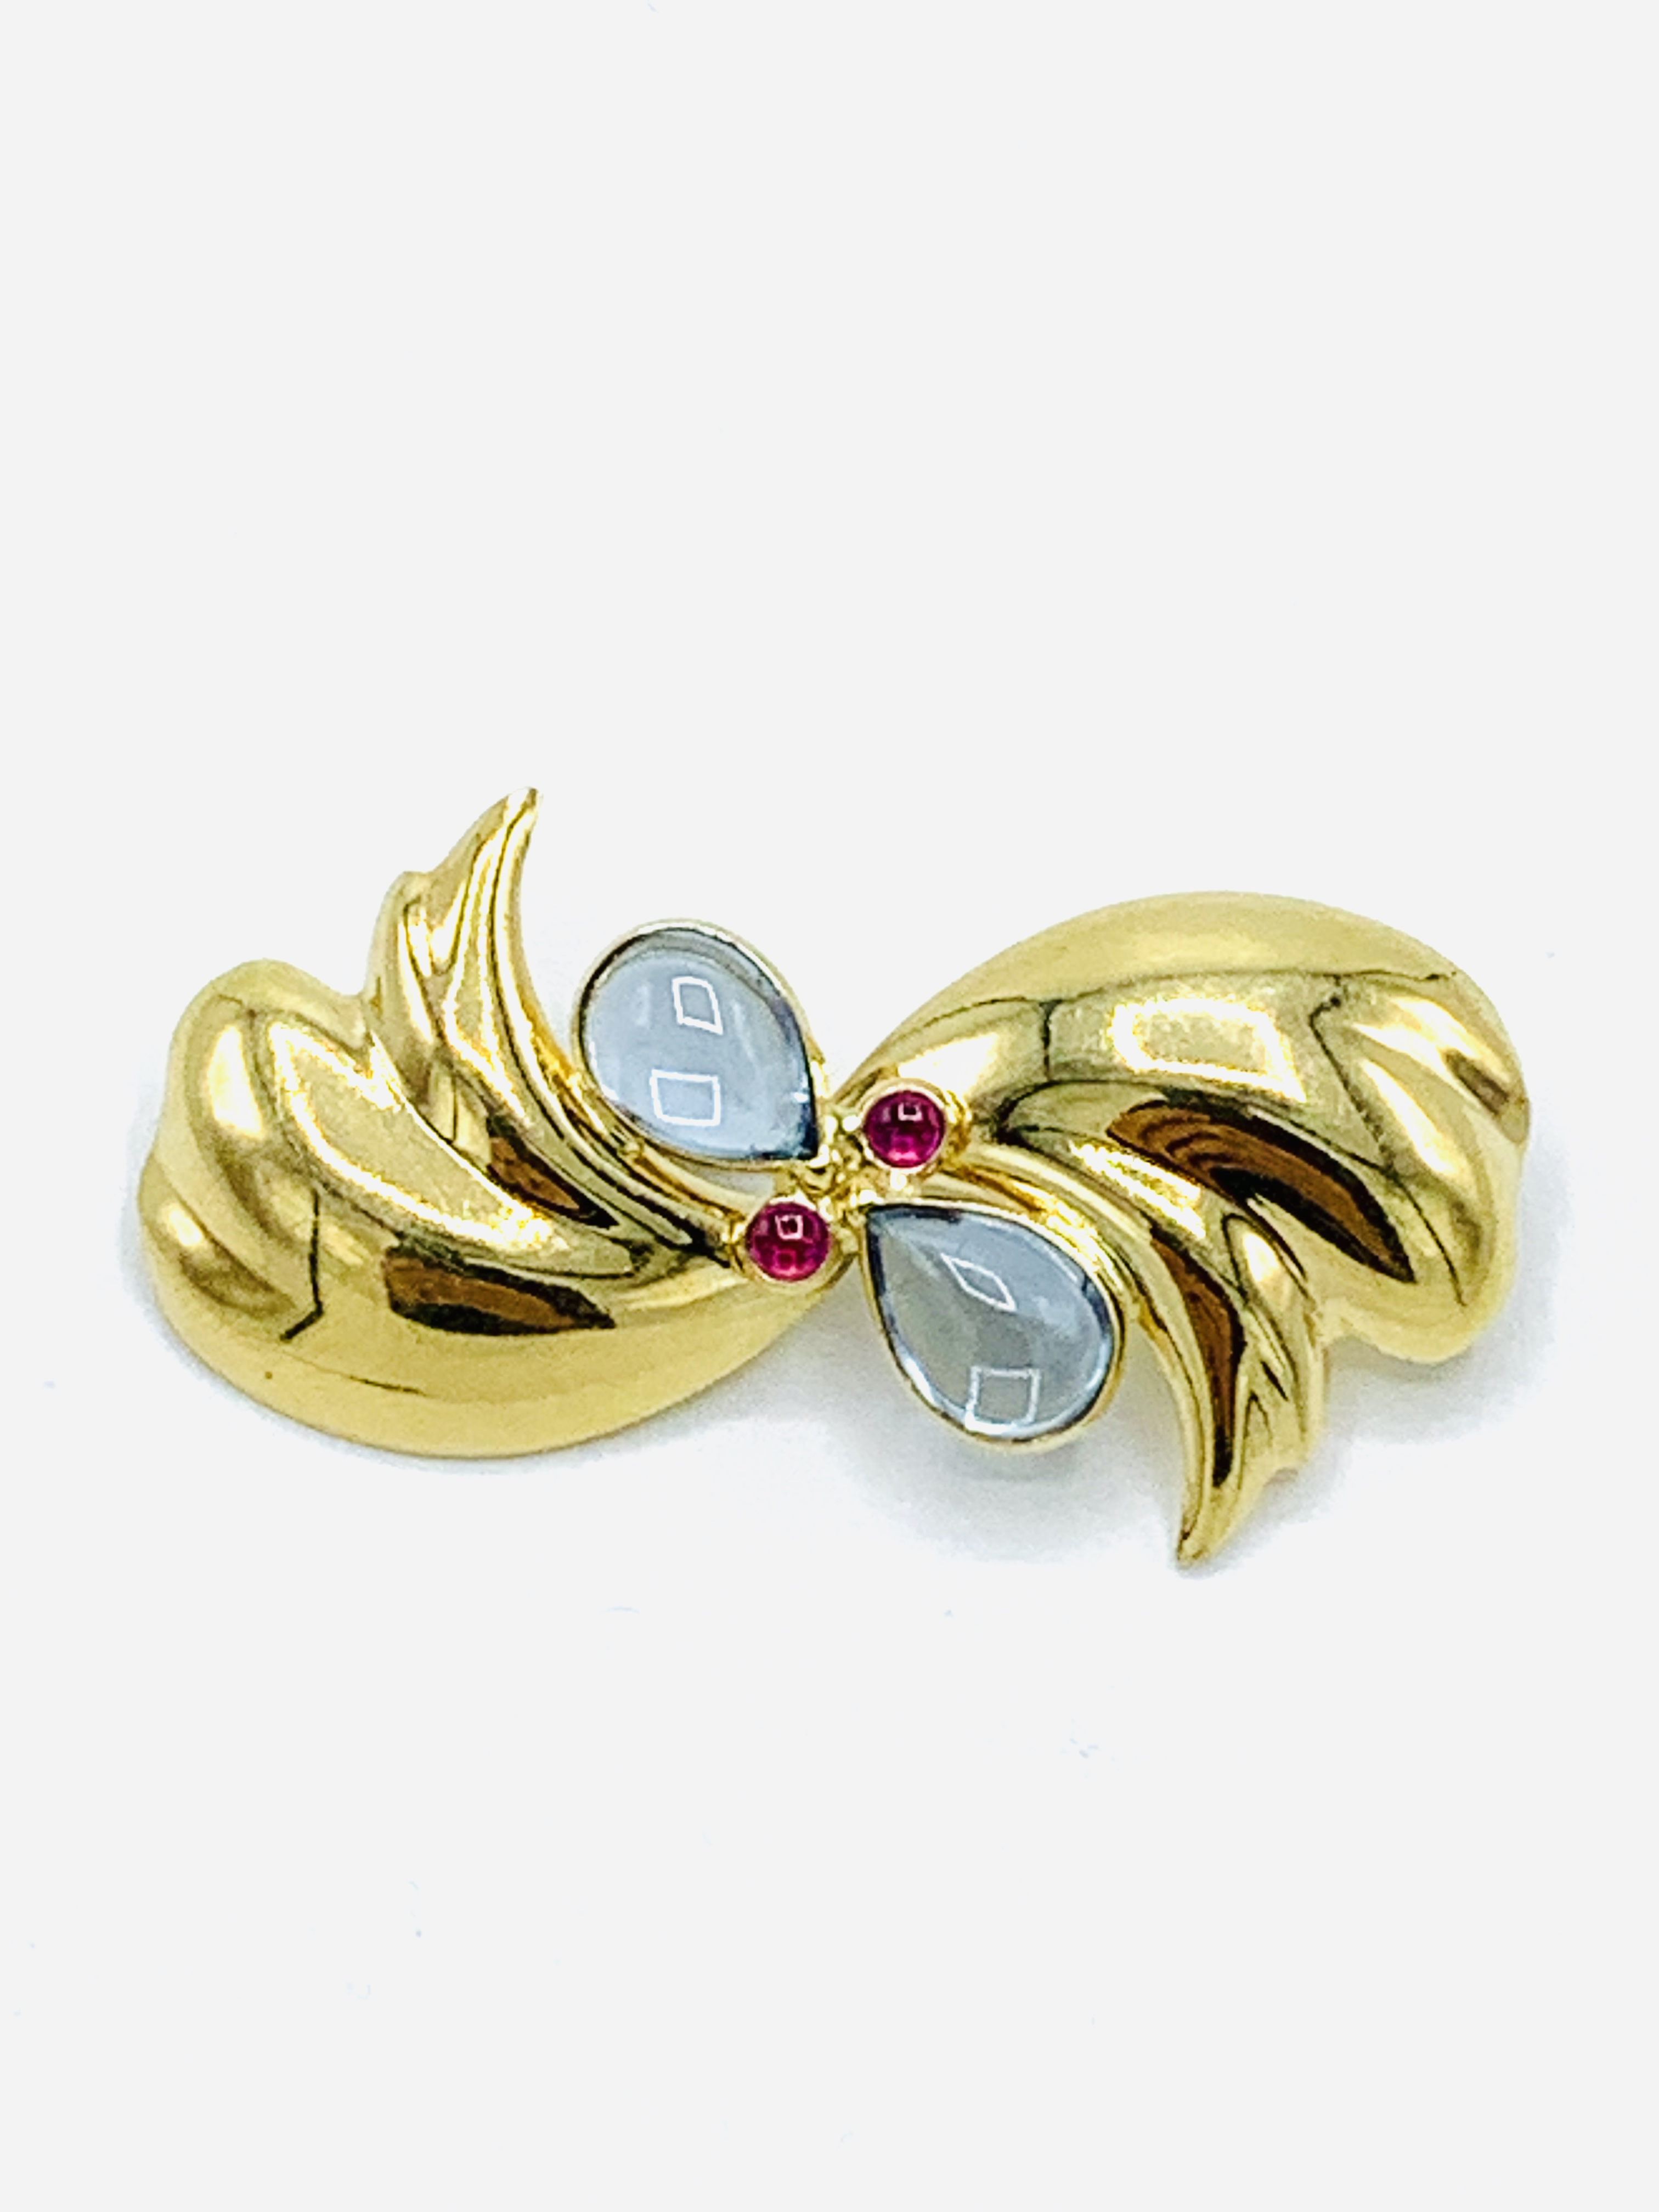 Contemporary 18ct gold brooch set with aquamarine cabochons and rubies